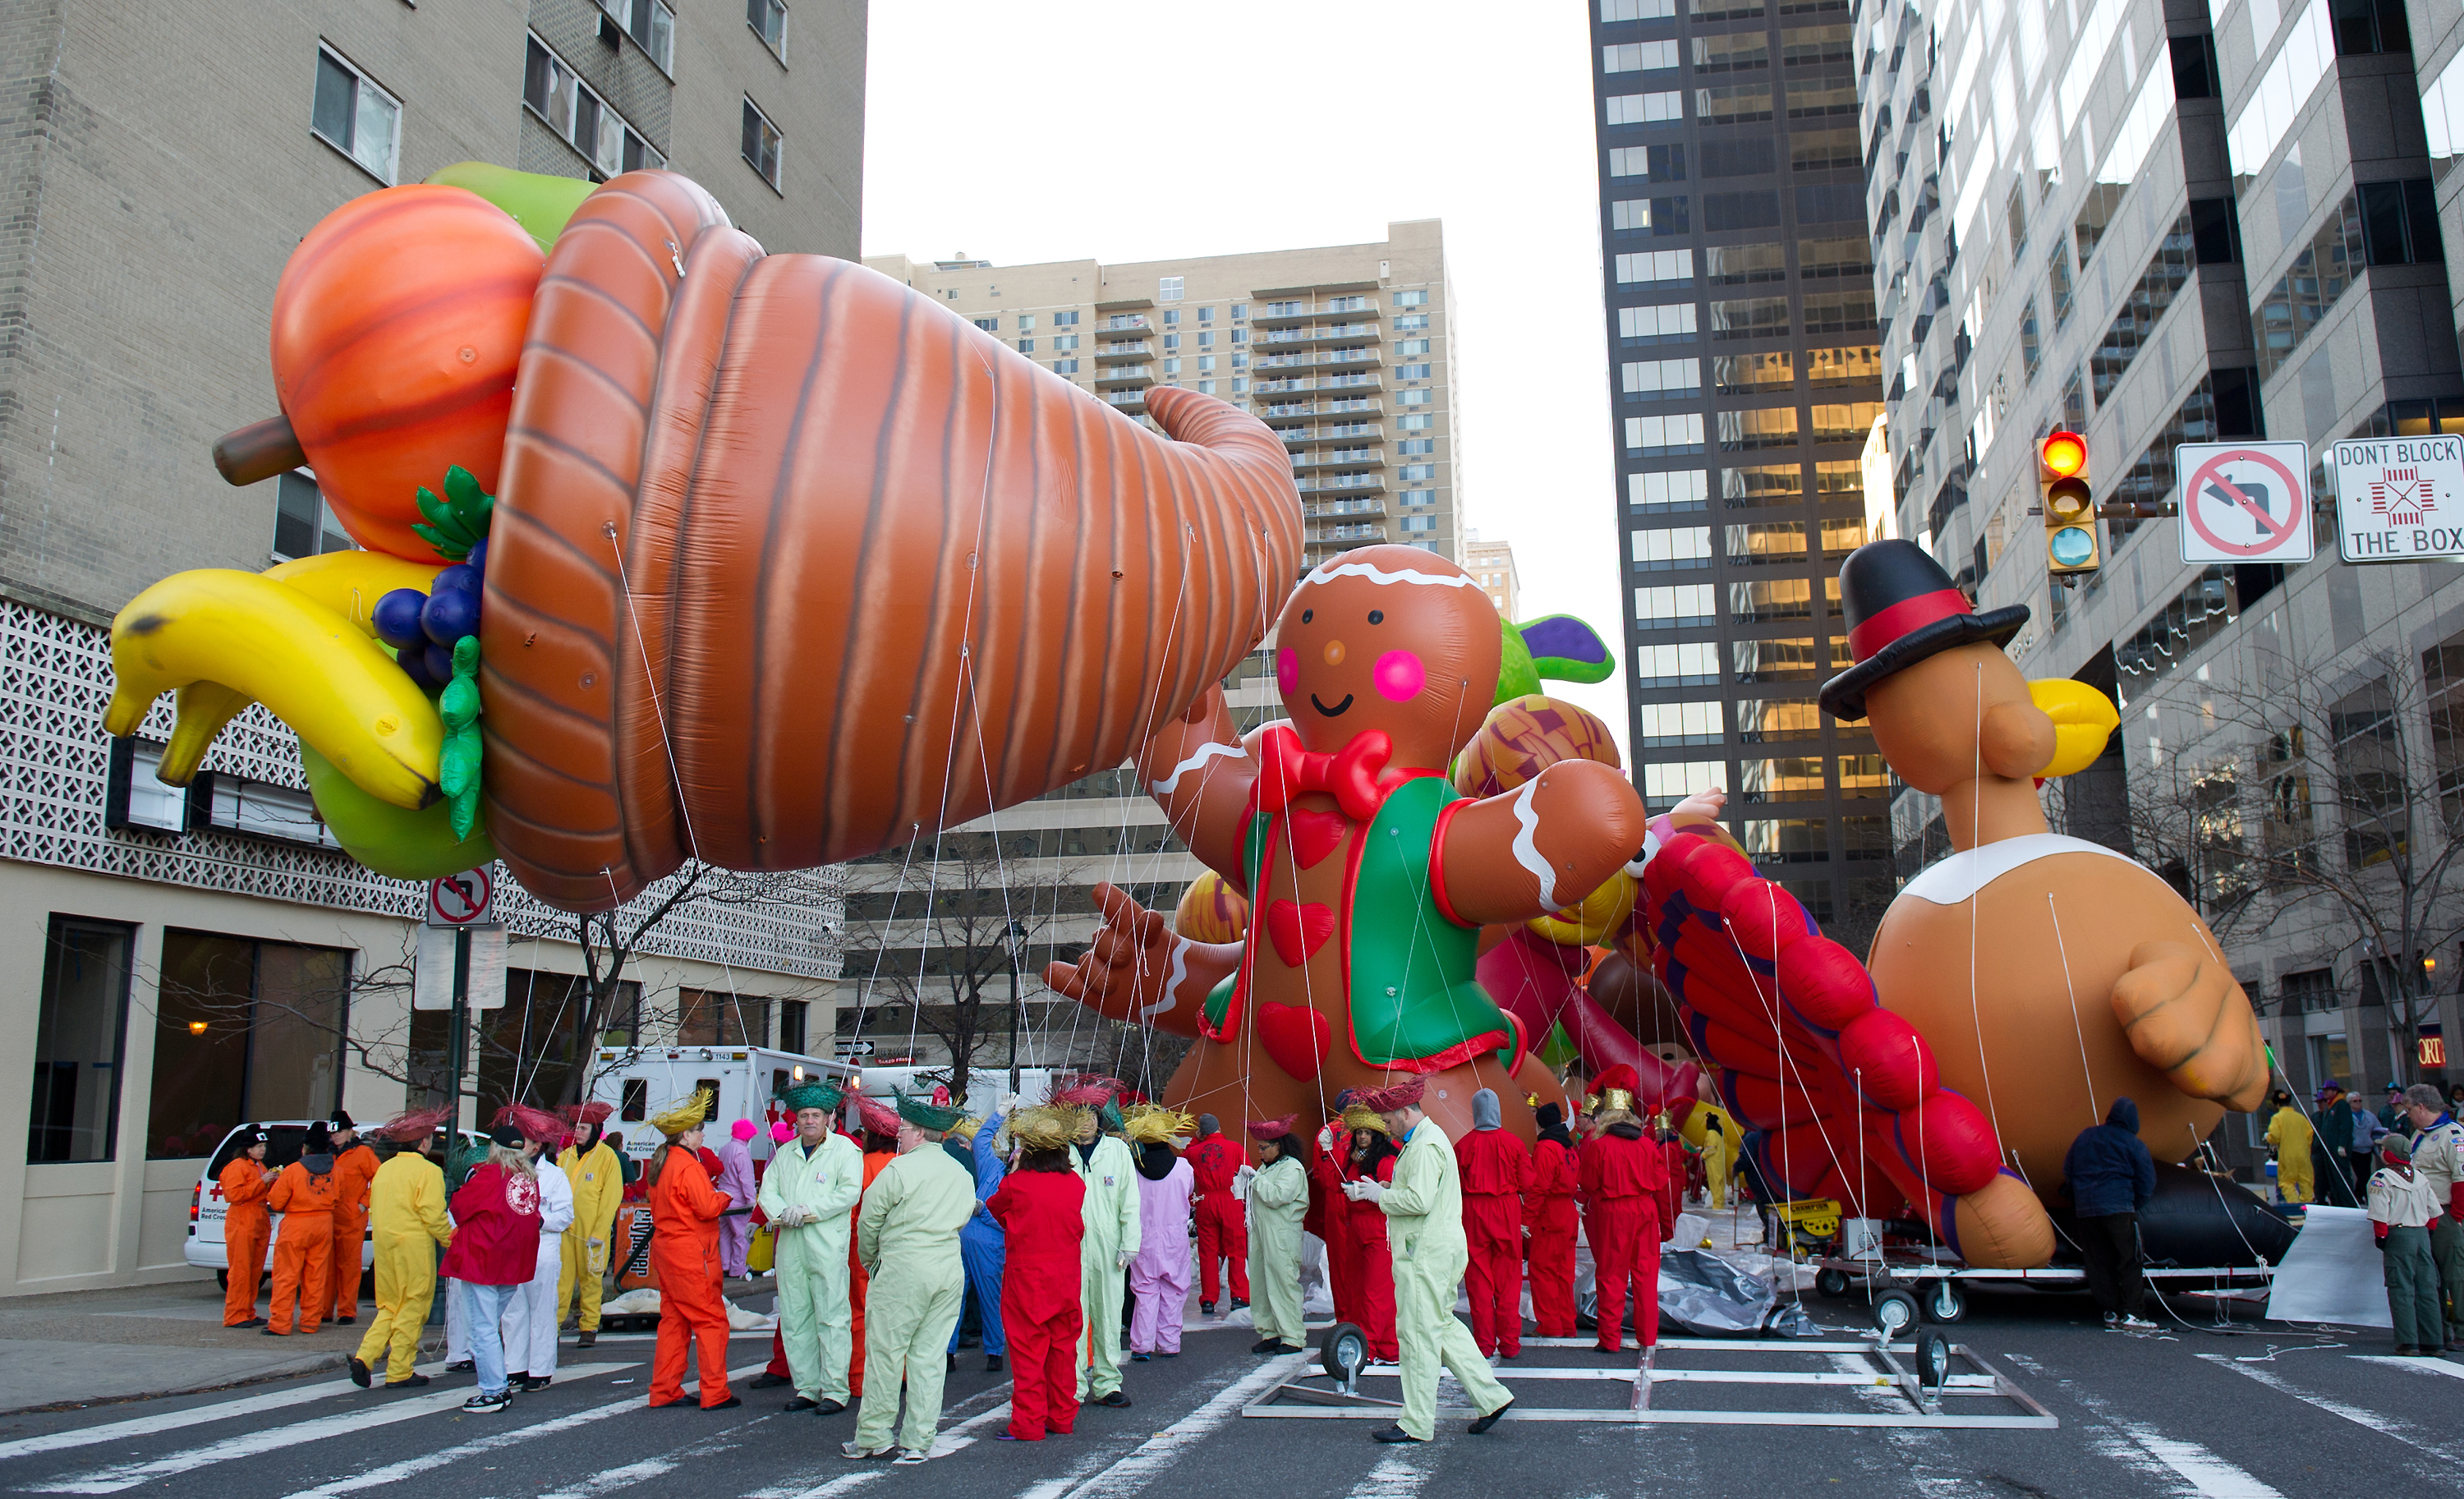 PHILADELPHIA, PA - NOVEMBER 24:  A general view of the balloons during the 92nd Annual 6ABC Dunkin' Donuts Thanksgiving Day Parade on November 24, 2011 in Philadelphia, Pennsylvania.  (Photo by Gilbert Carrasquillo/Getty Images)